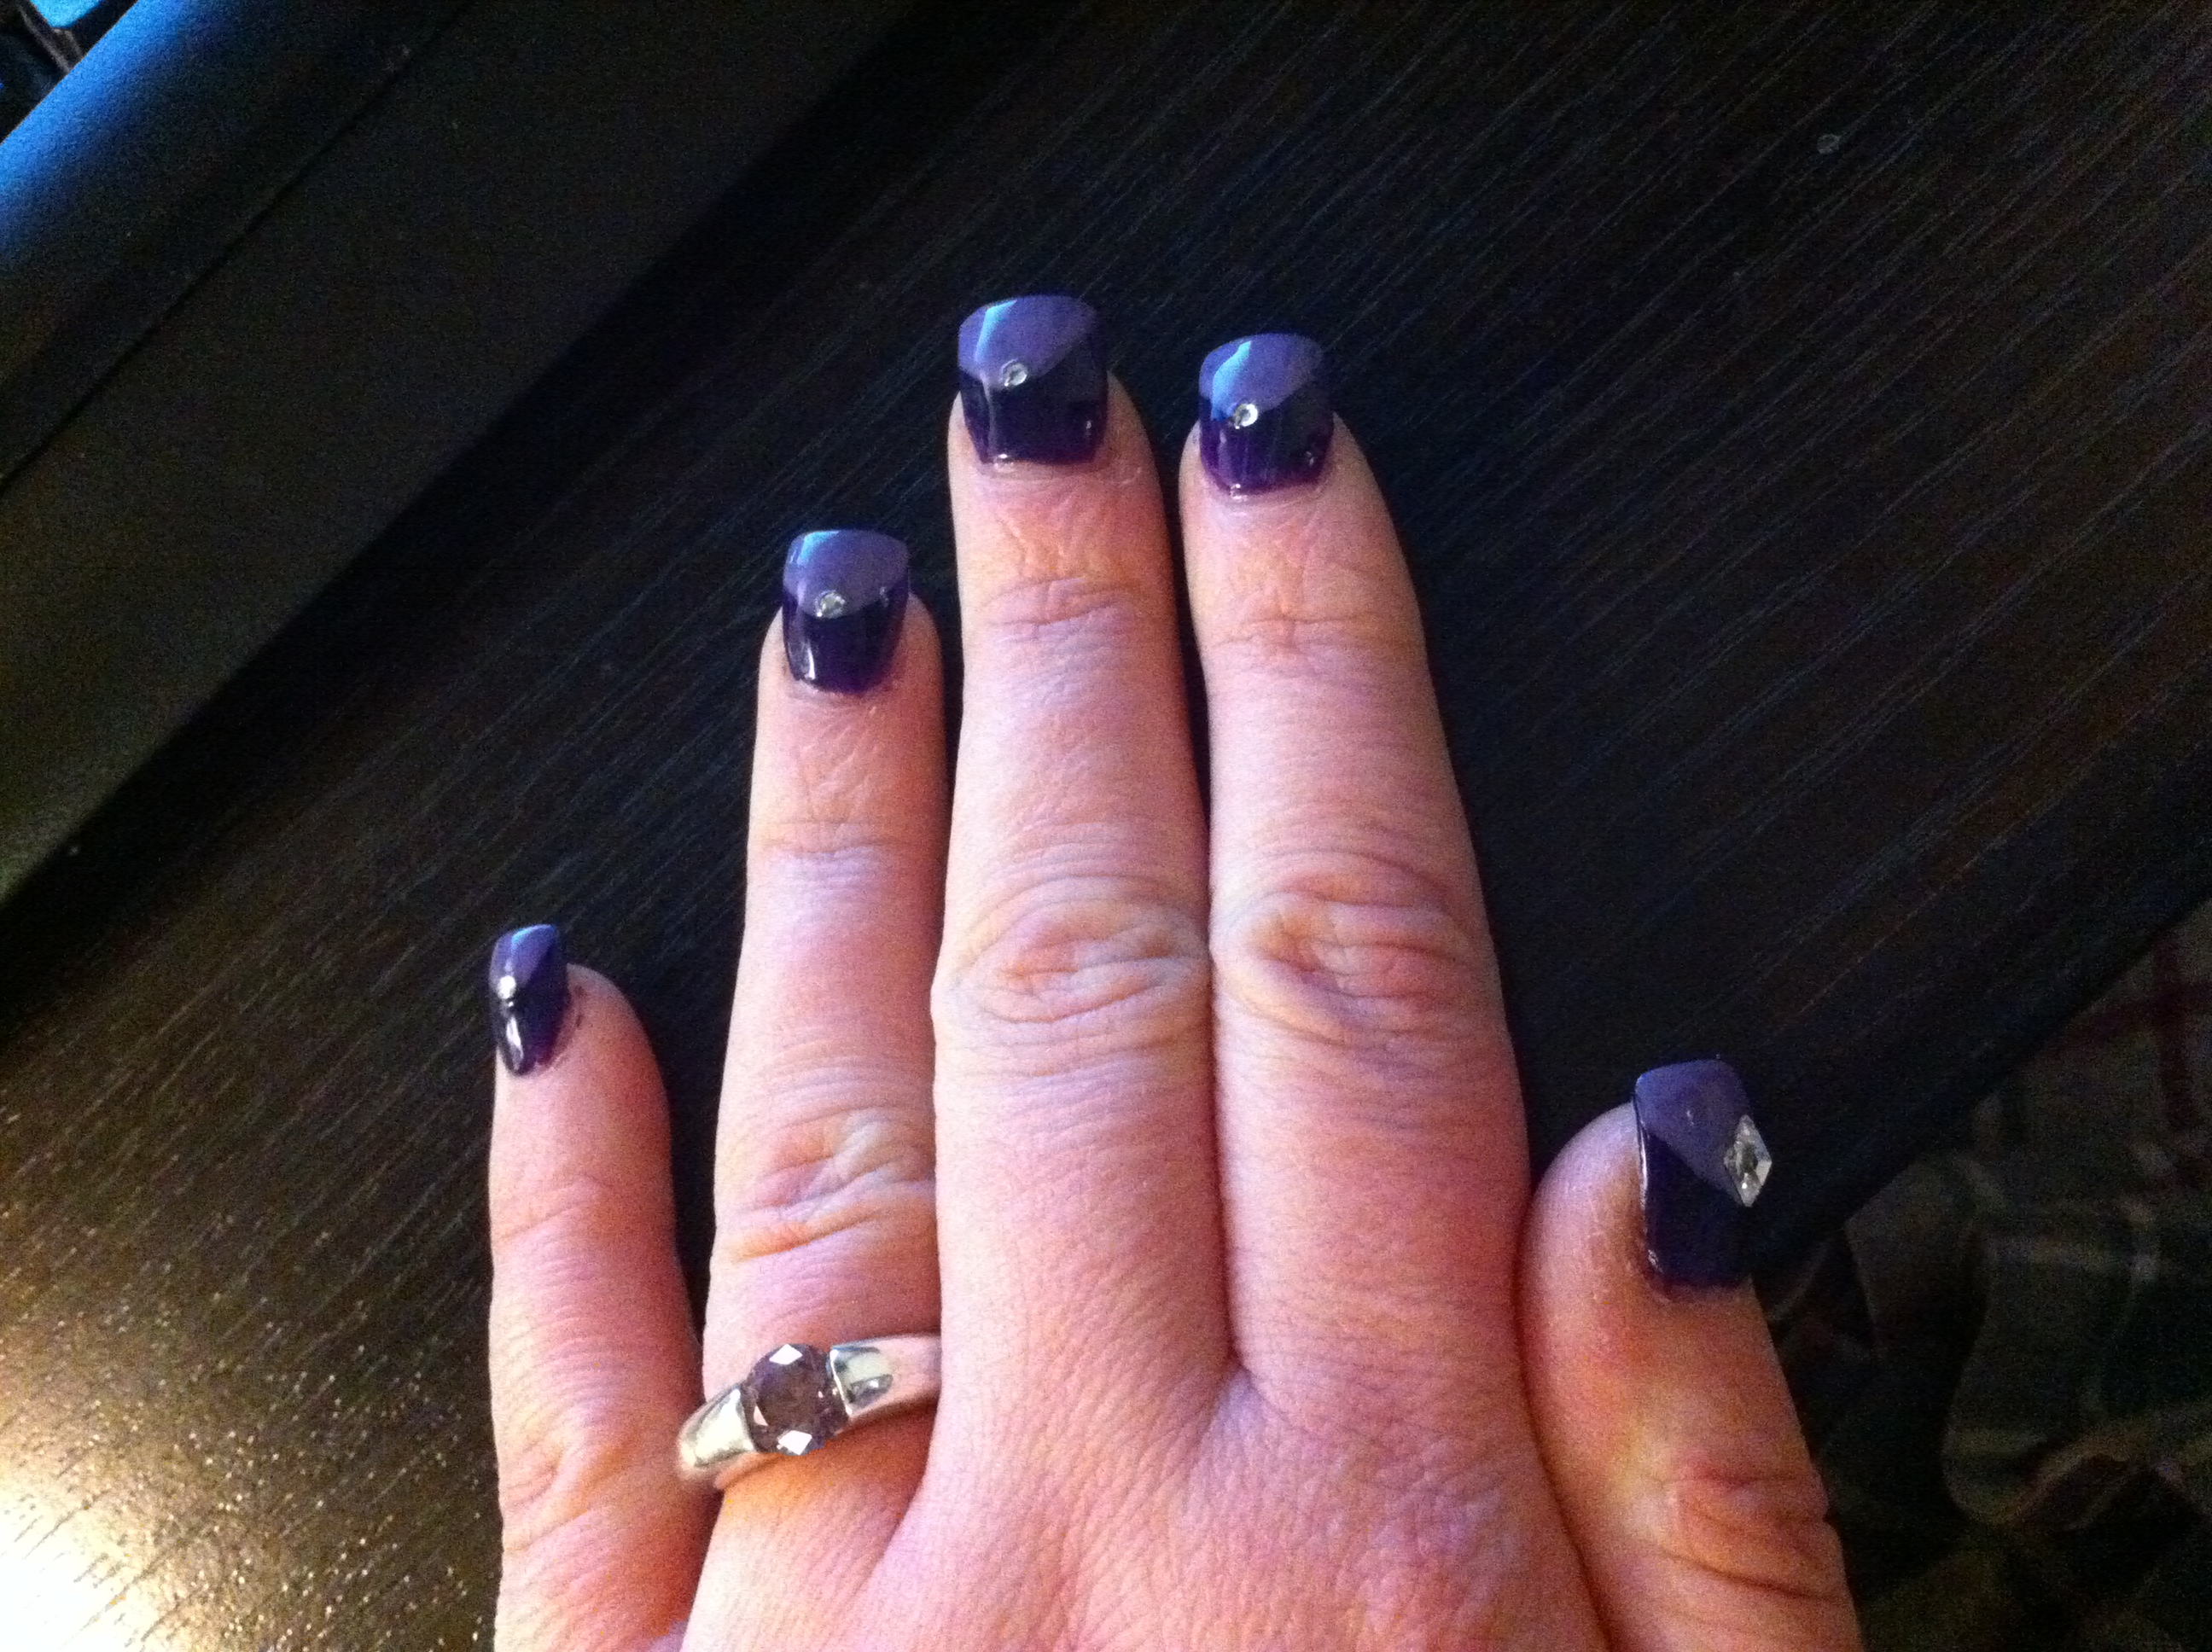 Excellent Glitter Nail Art Pens Thin All About Nail Art Regular How To Dry Nail Polish Easy Nail Art For Beginners Step By Step Old Nail Polish And Pregnancy DarkNail Fungus Finger Two Tone Purple Nails   Madame Gourmand LifestyleMadame Gourmand ..